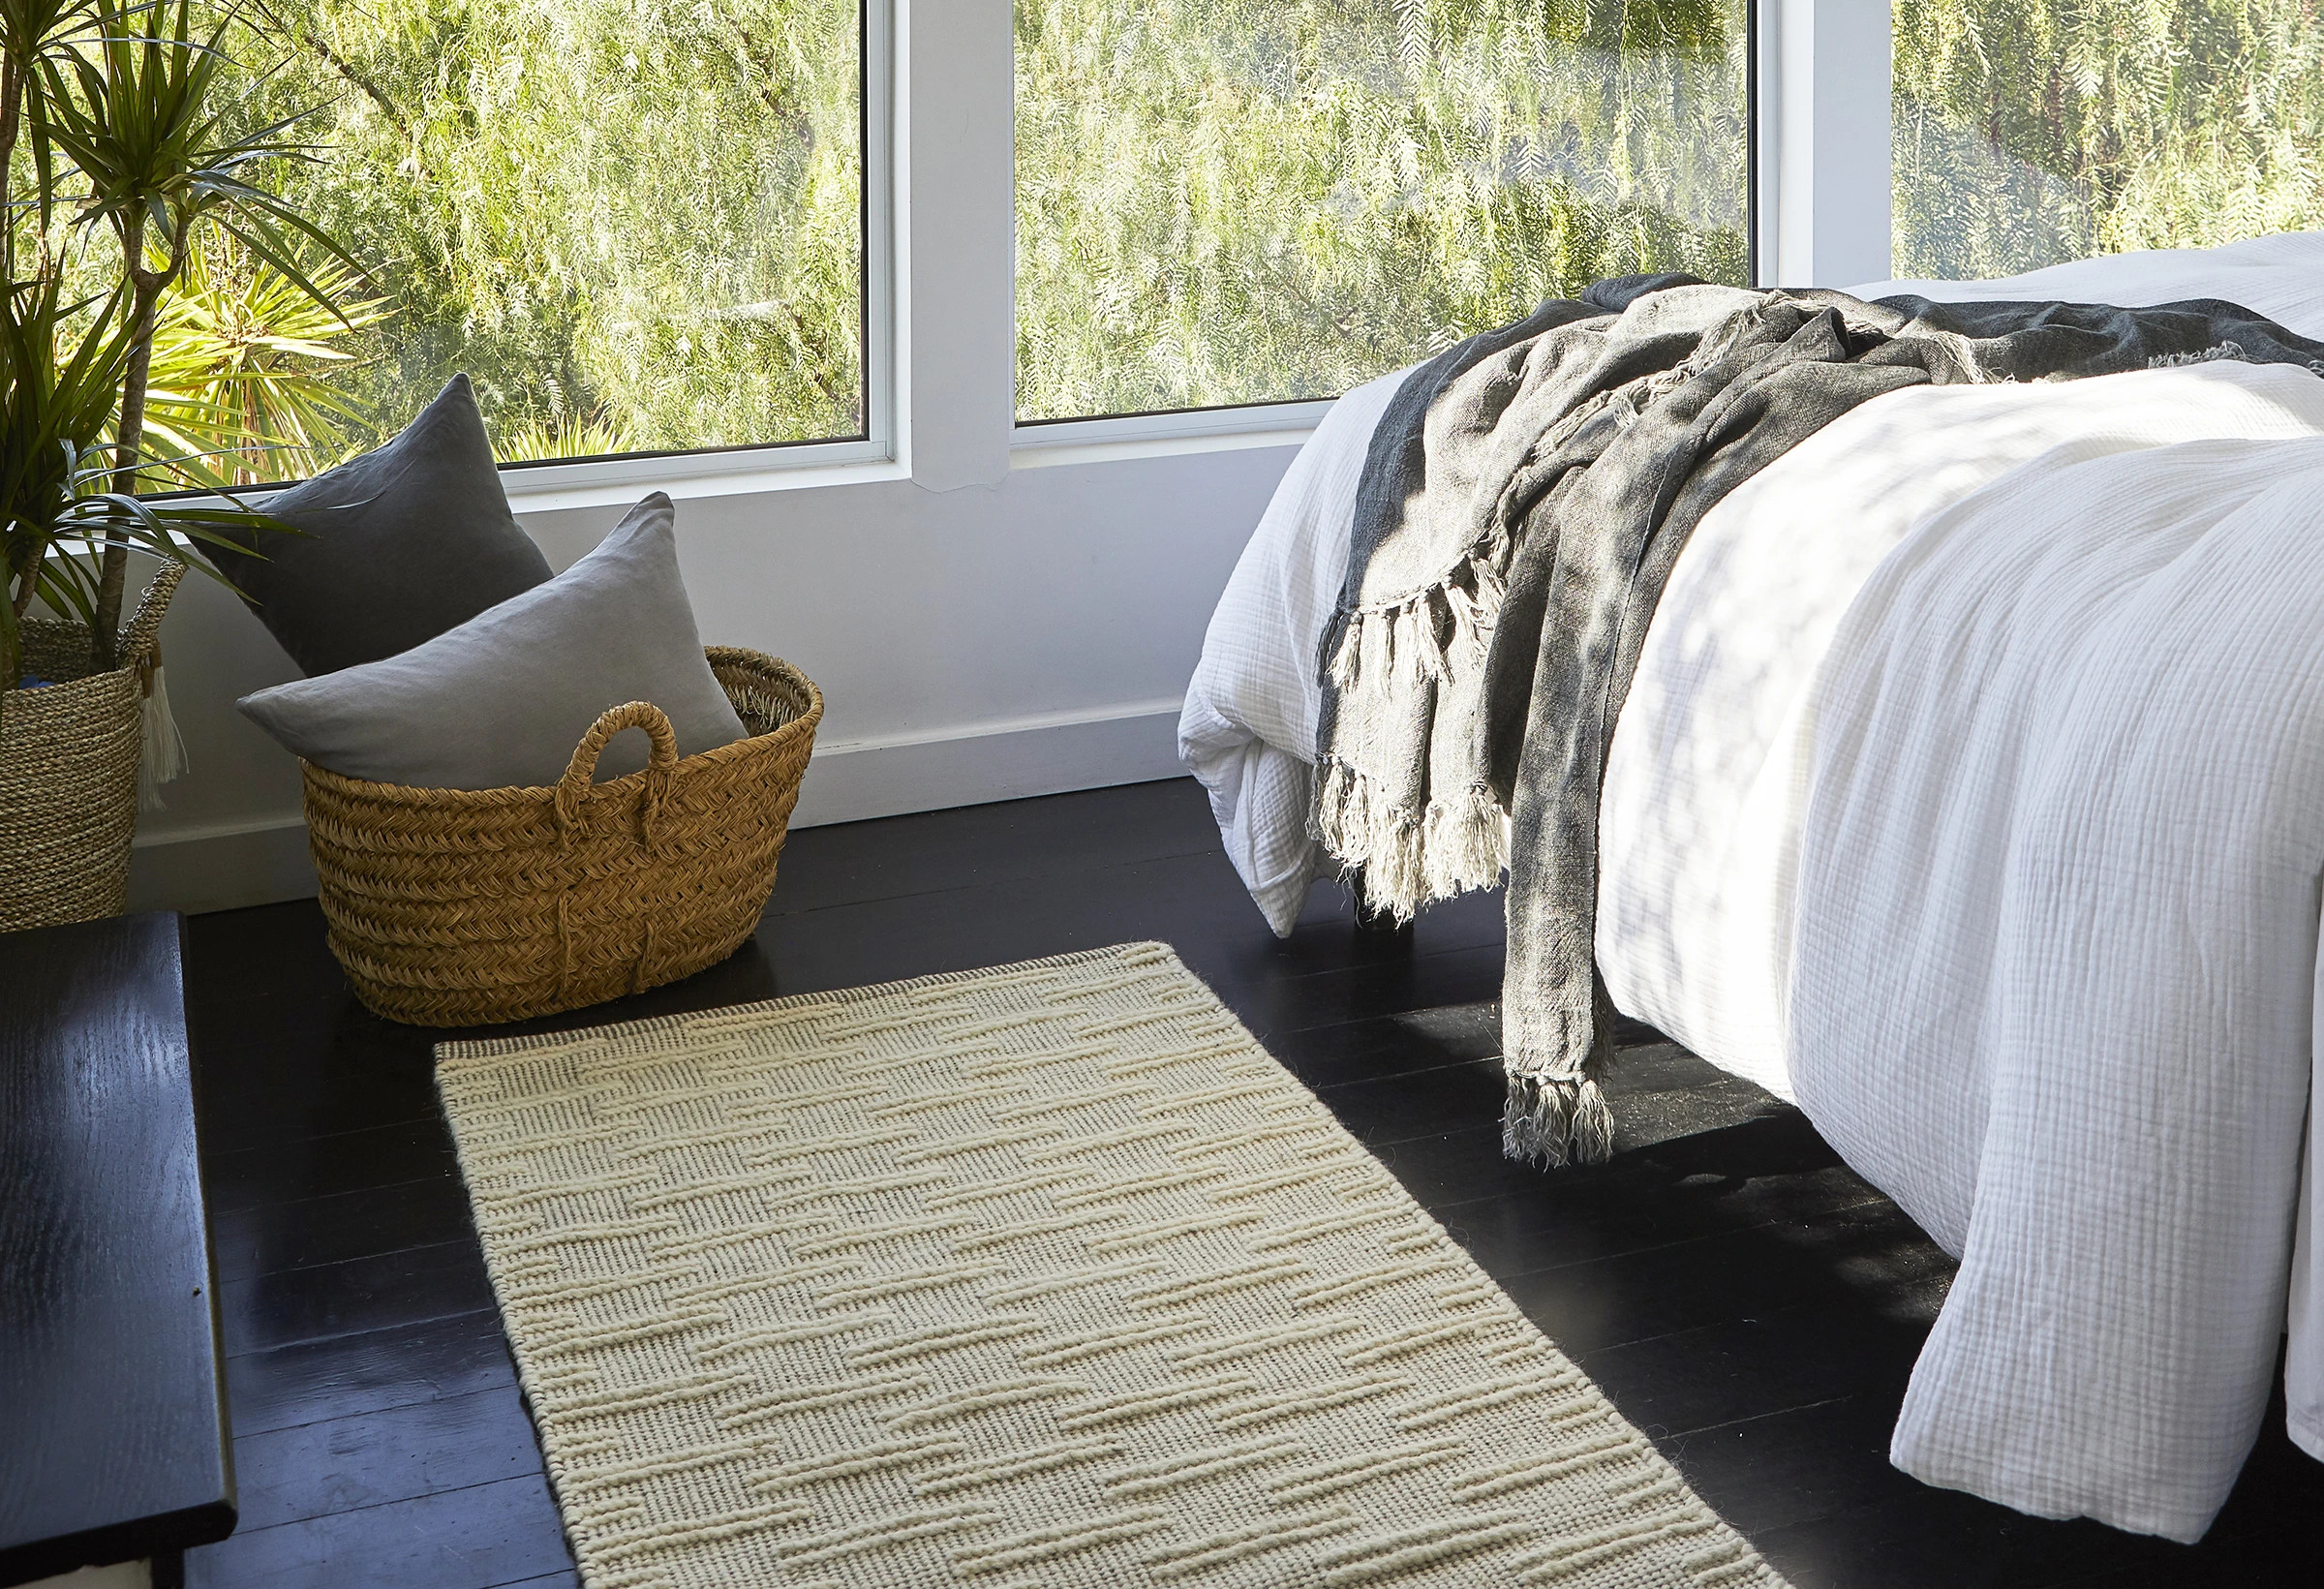 wonderful textured rug at the end of a bed